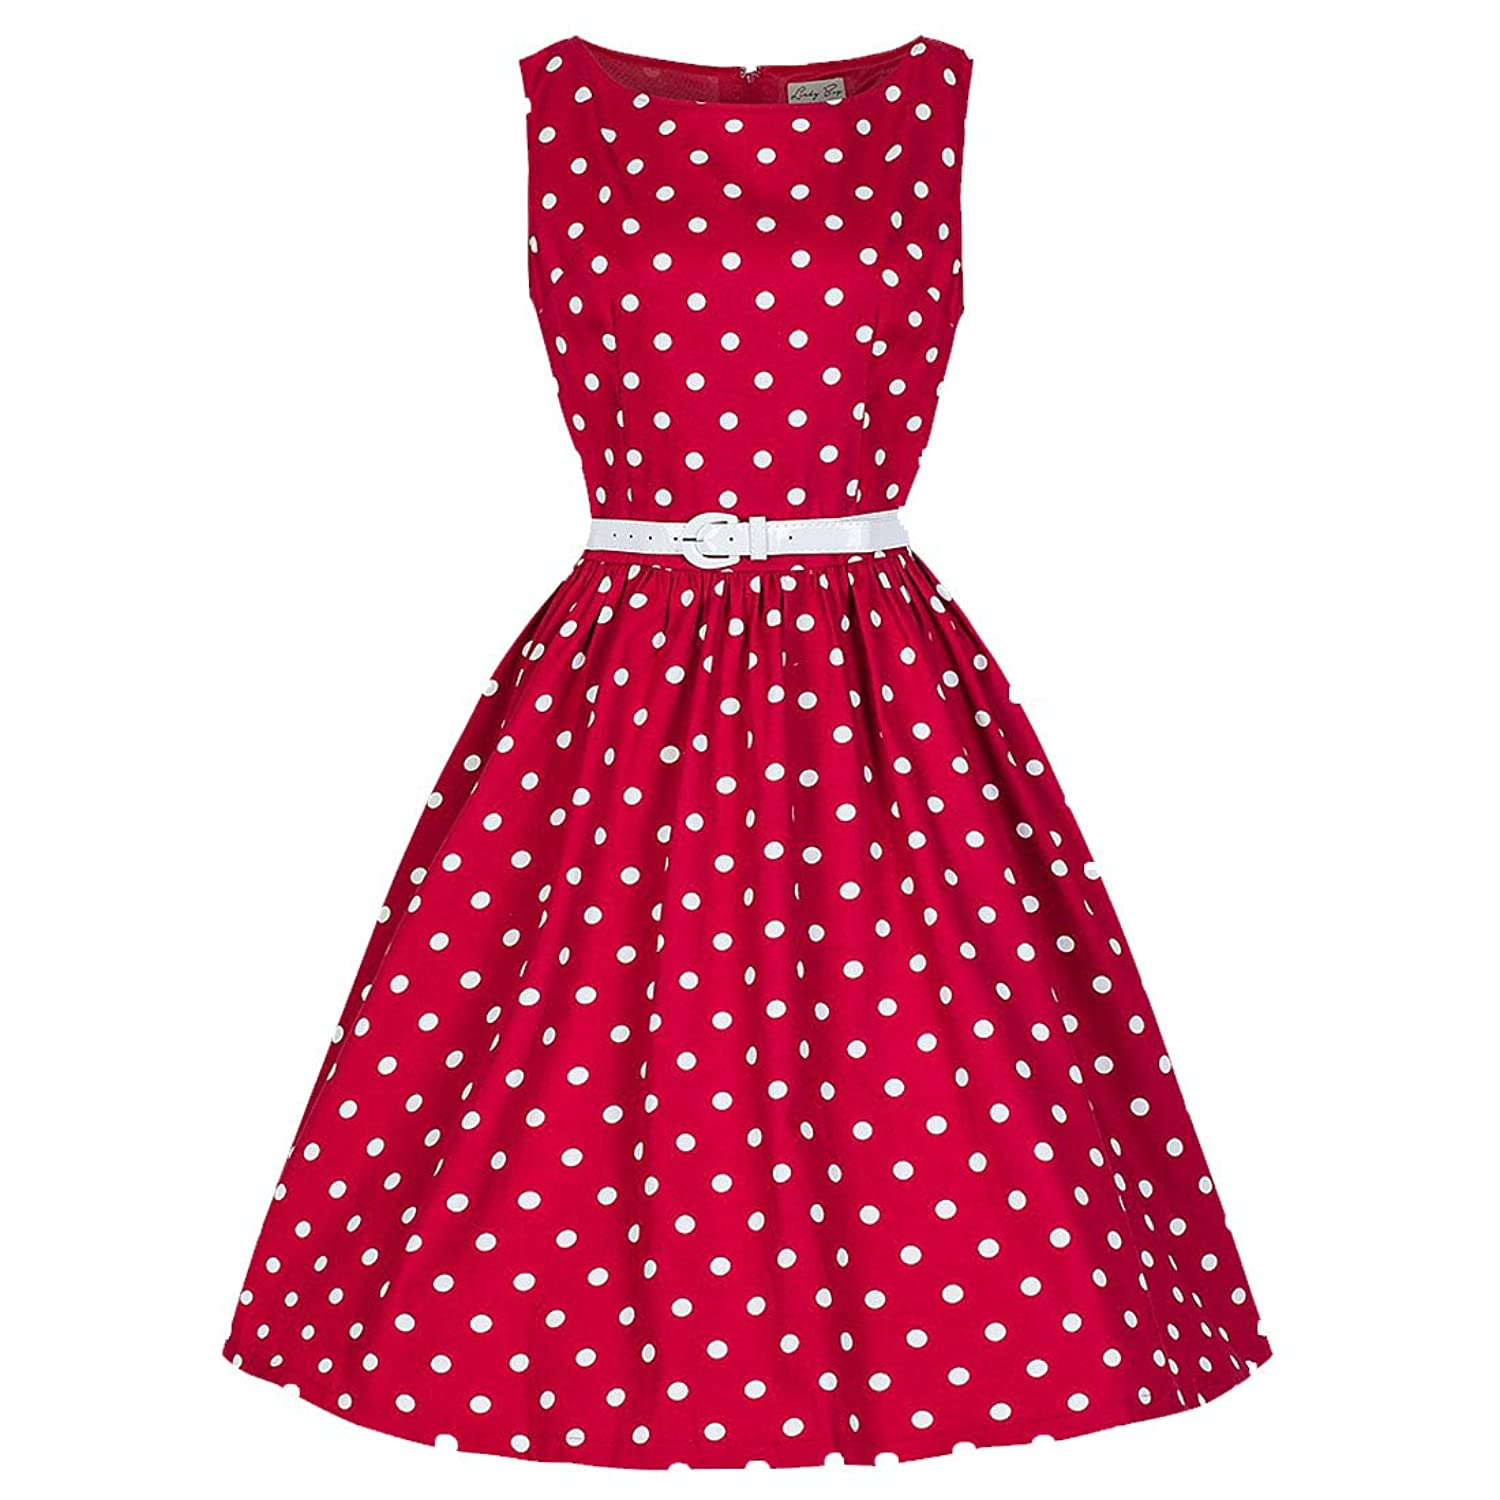 Partiss Damen Frauen Elegant 60er Vintage Polka Dot Kleid Punkte A-Linie Guertel Damen Kleider Festlich Knielang Party Dress